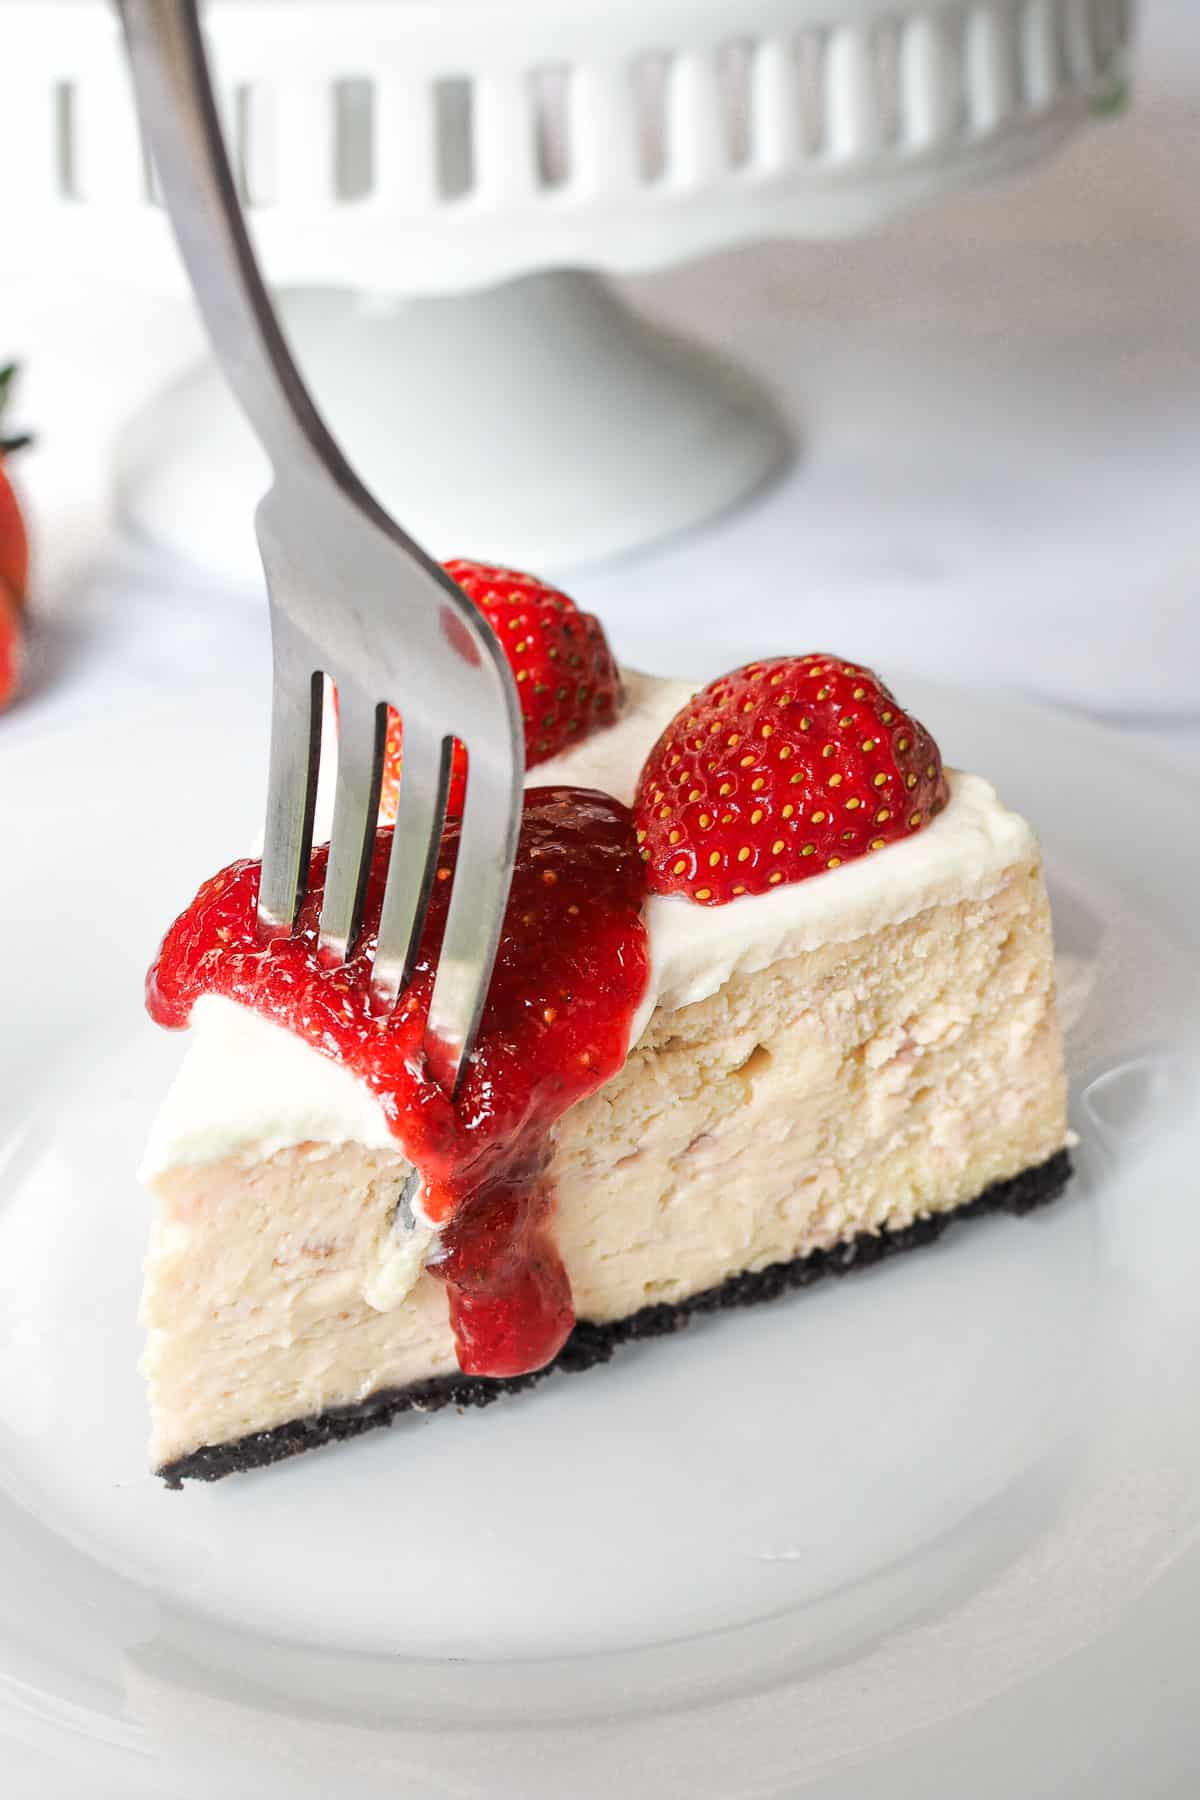 Digging into a slice of a Oreo strawberry cheesecake slice with a fork